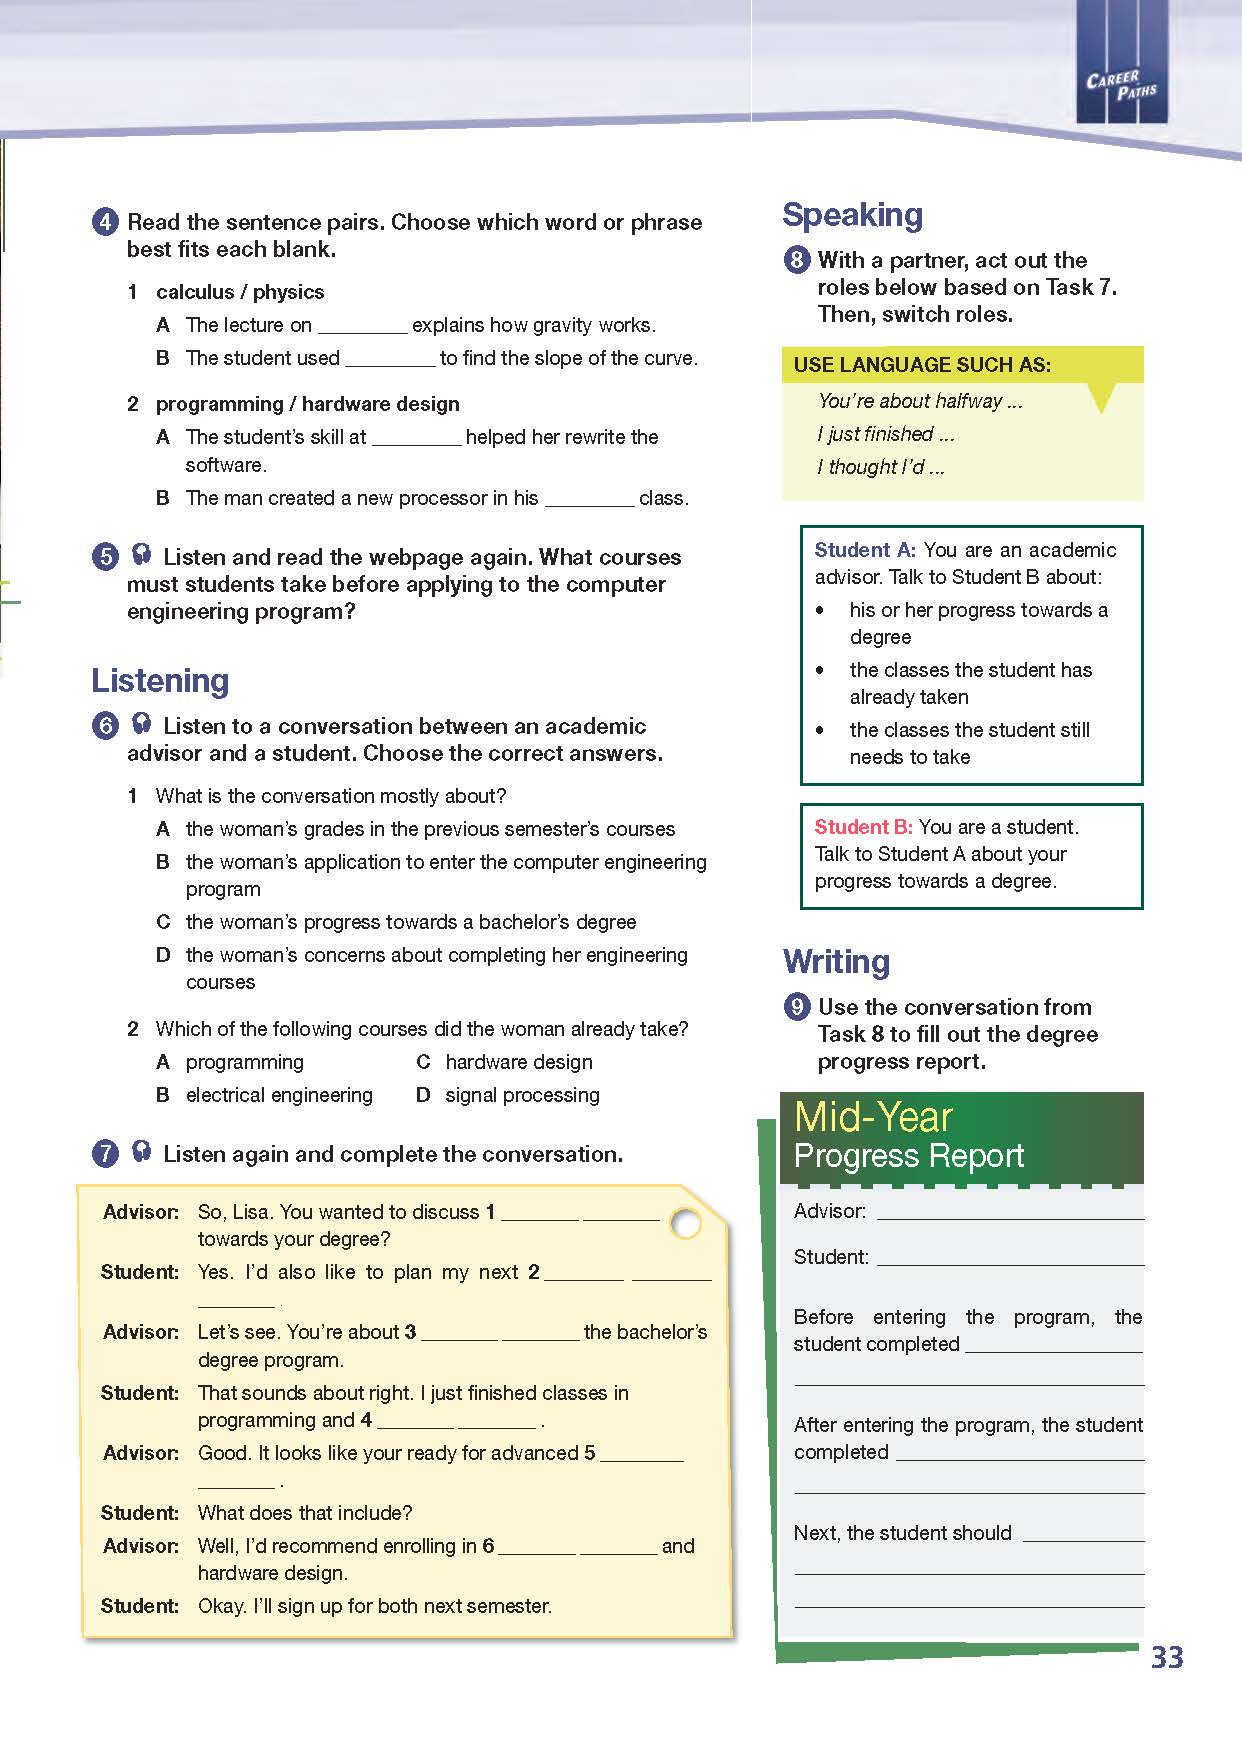 ESP English for Specific Purposes - Career Paths: Computer Engineering - Sample Page 4